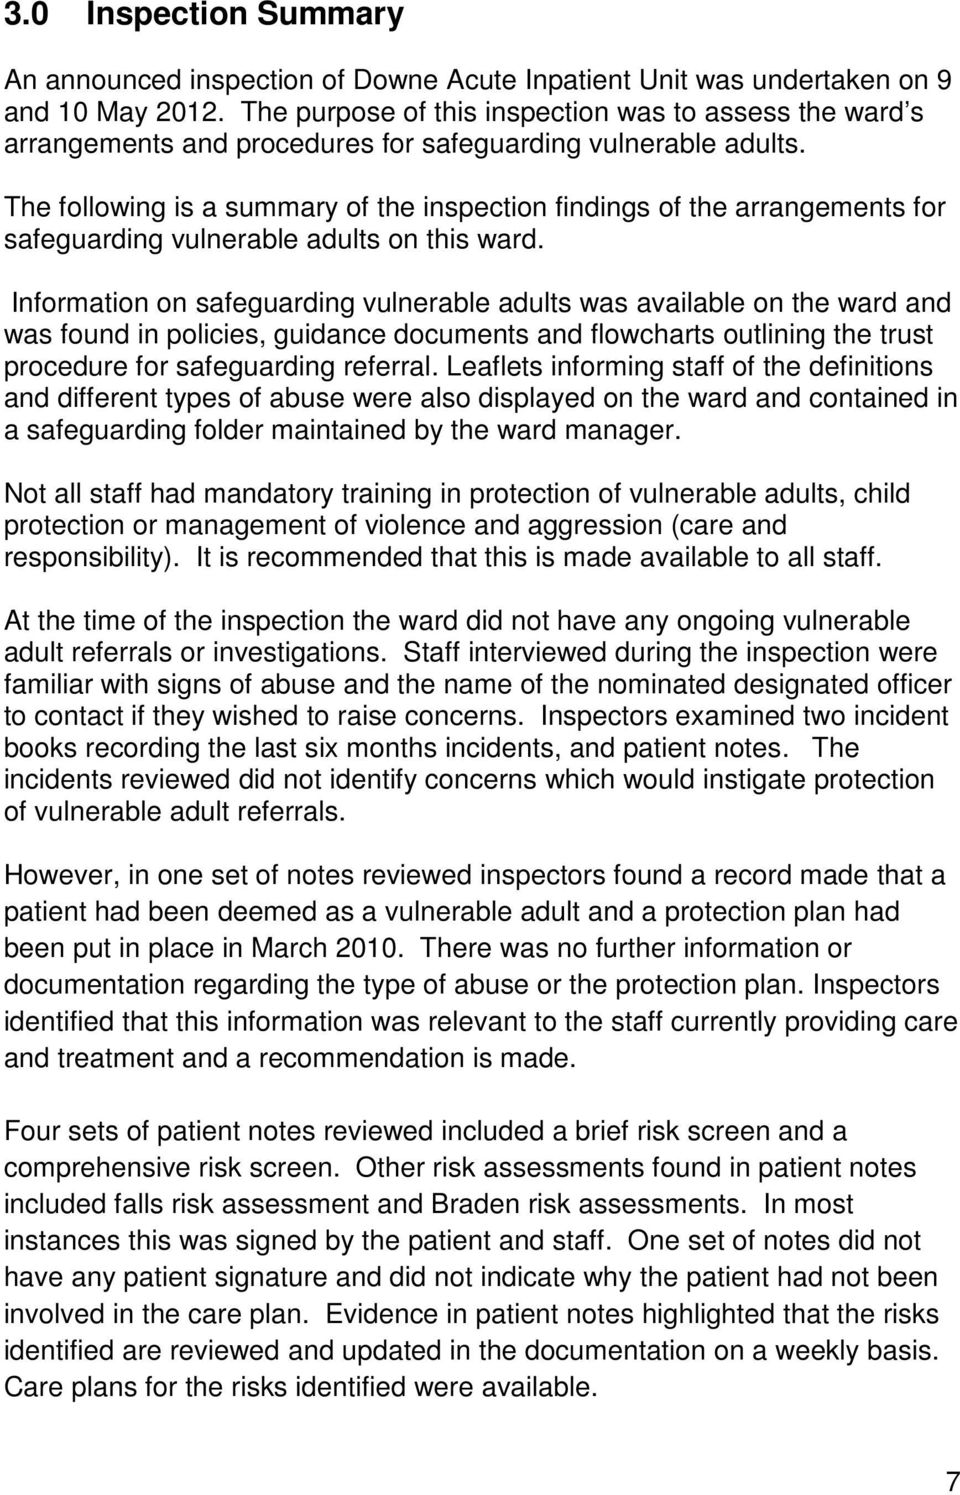 The following is a summary of the inspection findings of the arrangements for safeguarding vulnerable adults on this ward.